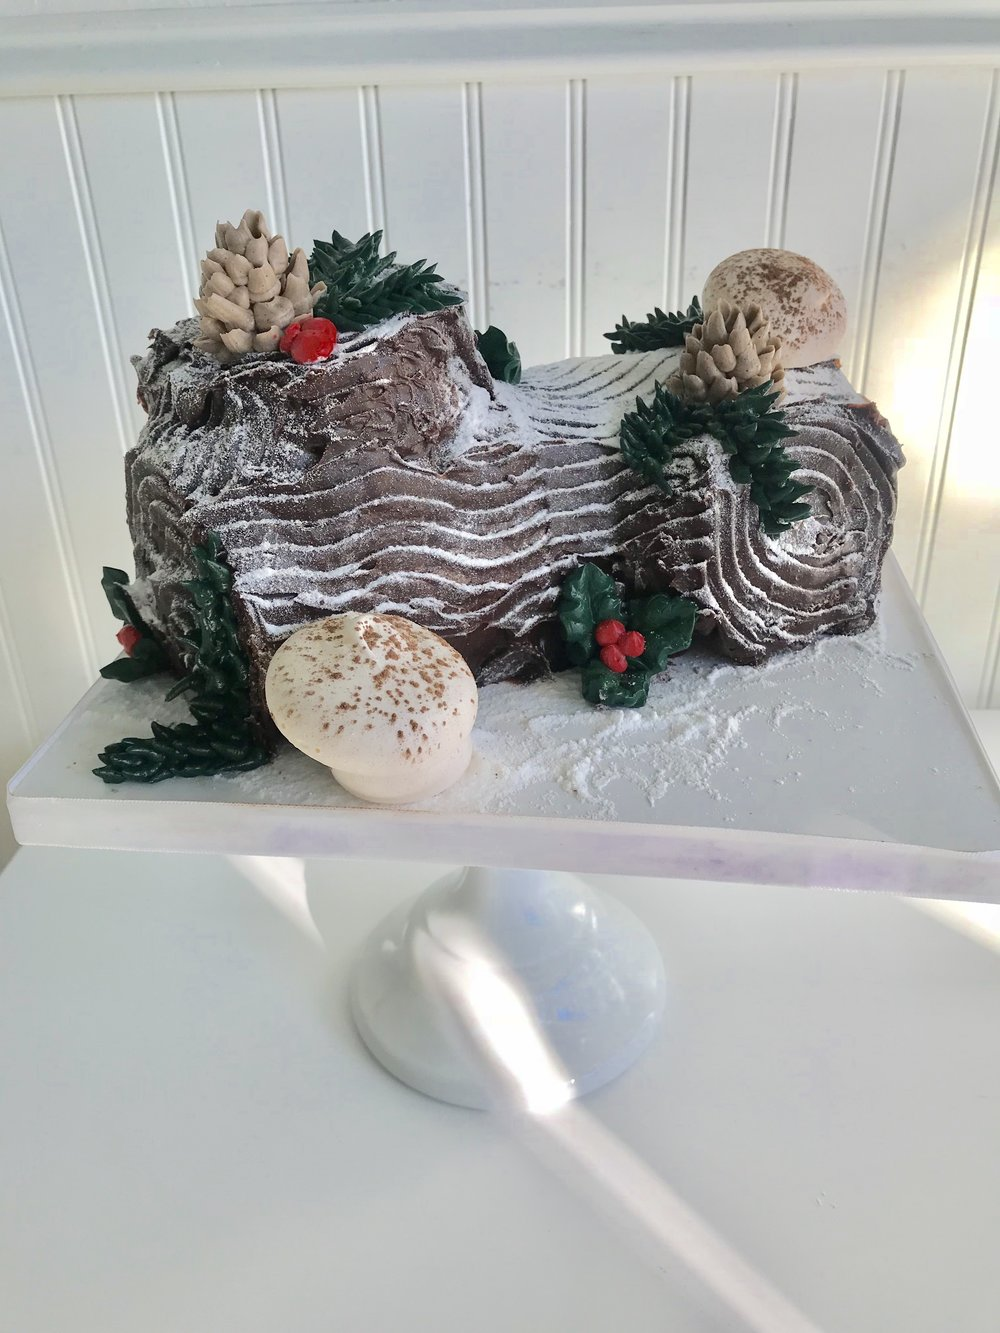 Yule Log   Rolled chocolate cake all dressed up!  $85